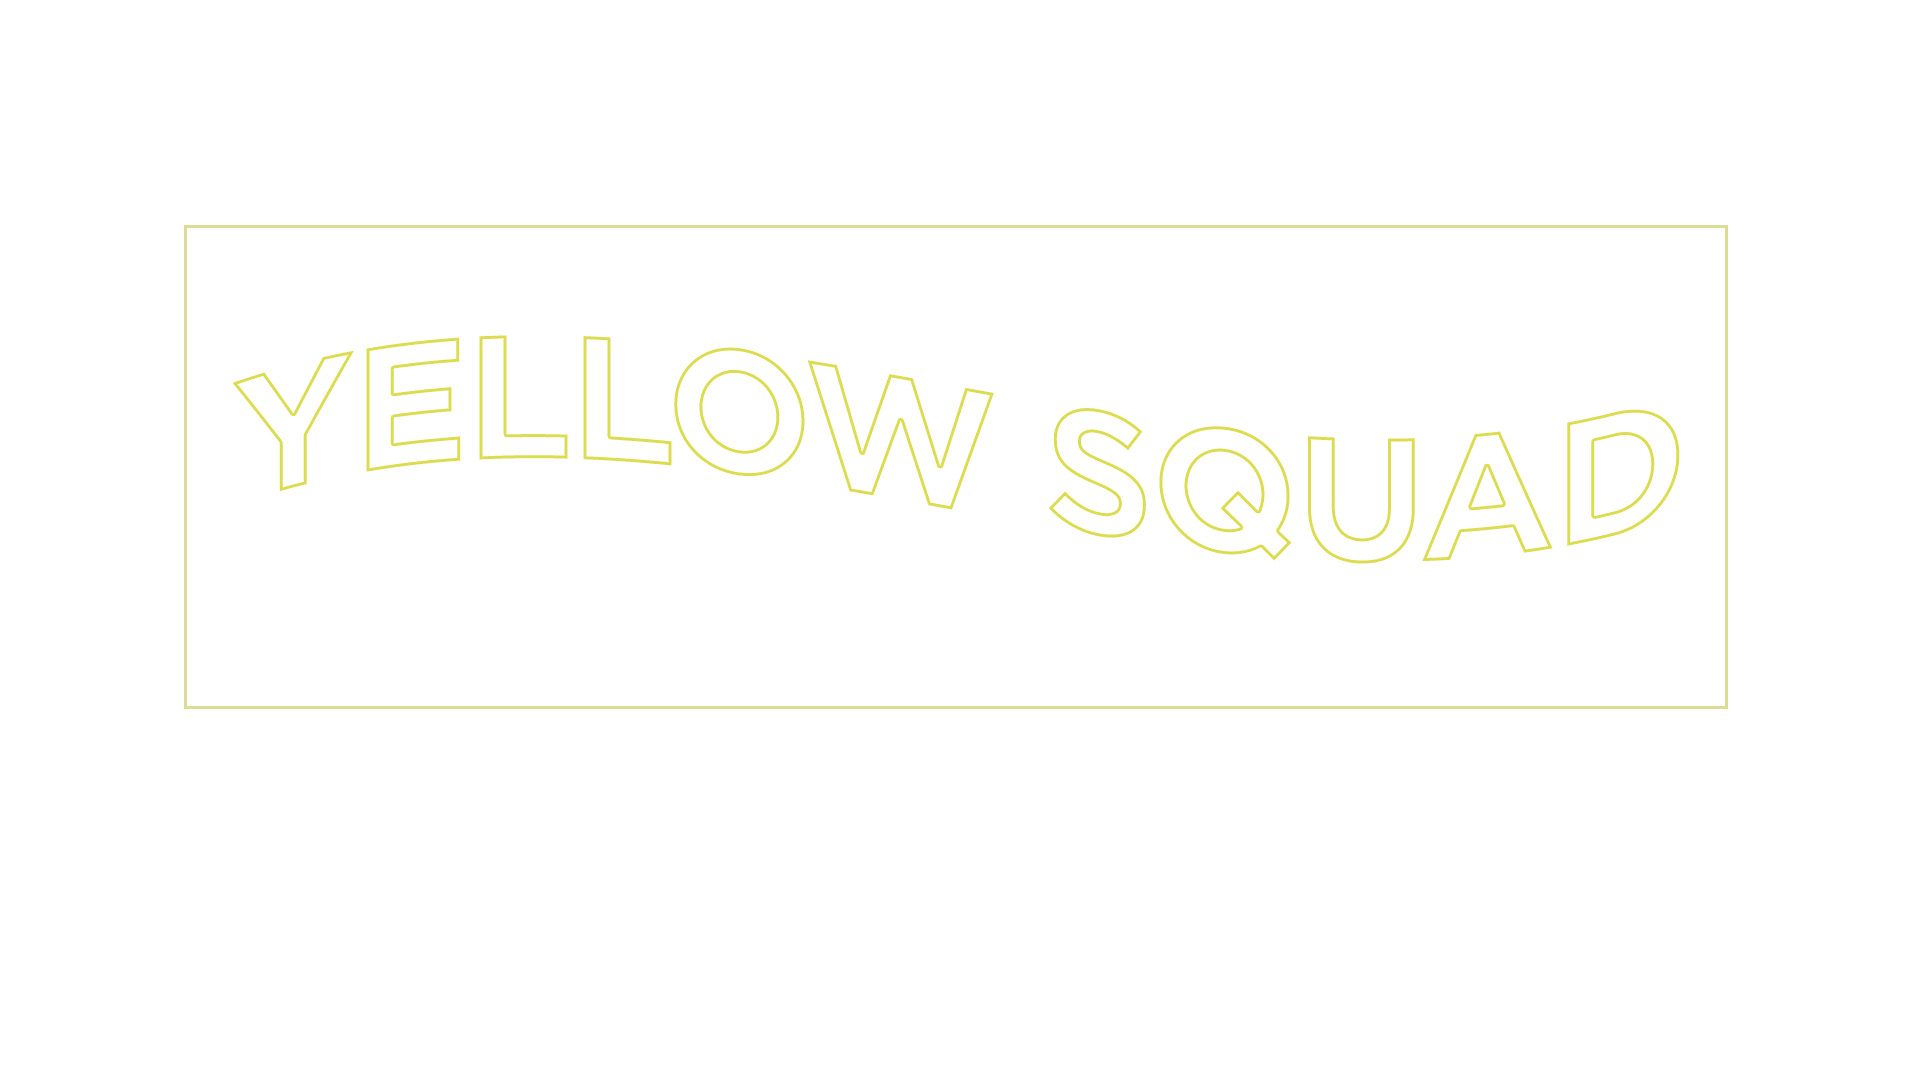 yellowsquad header.jpg